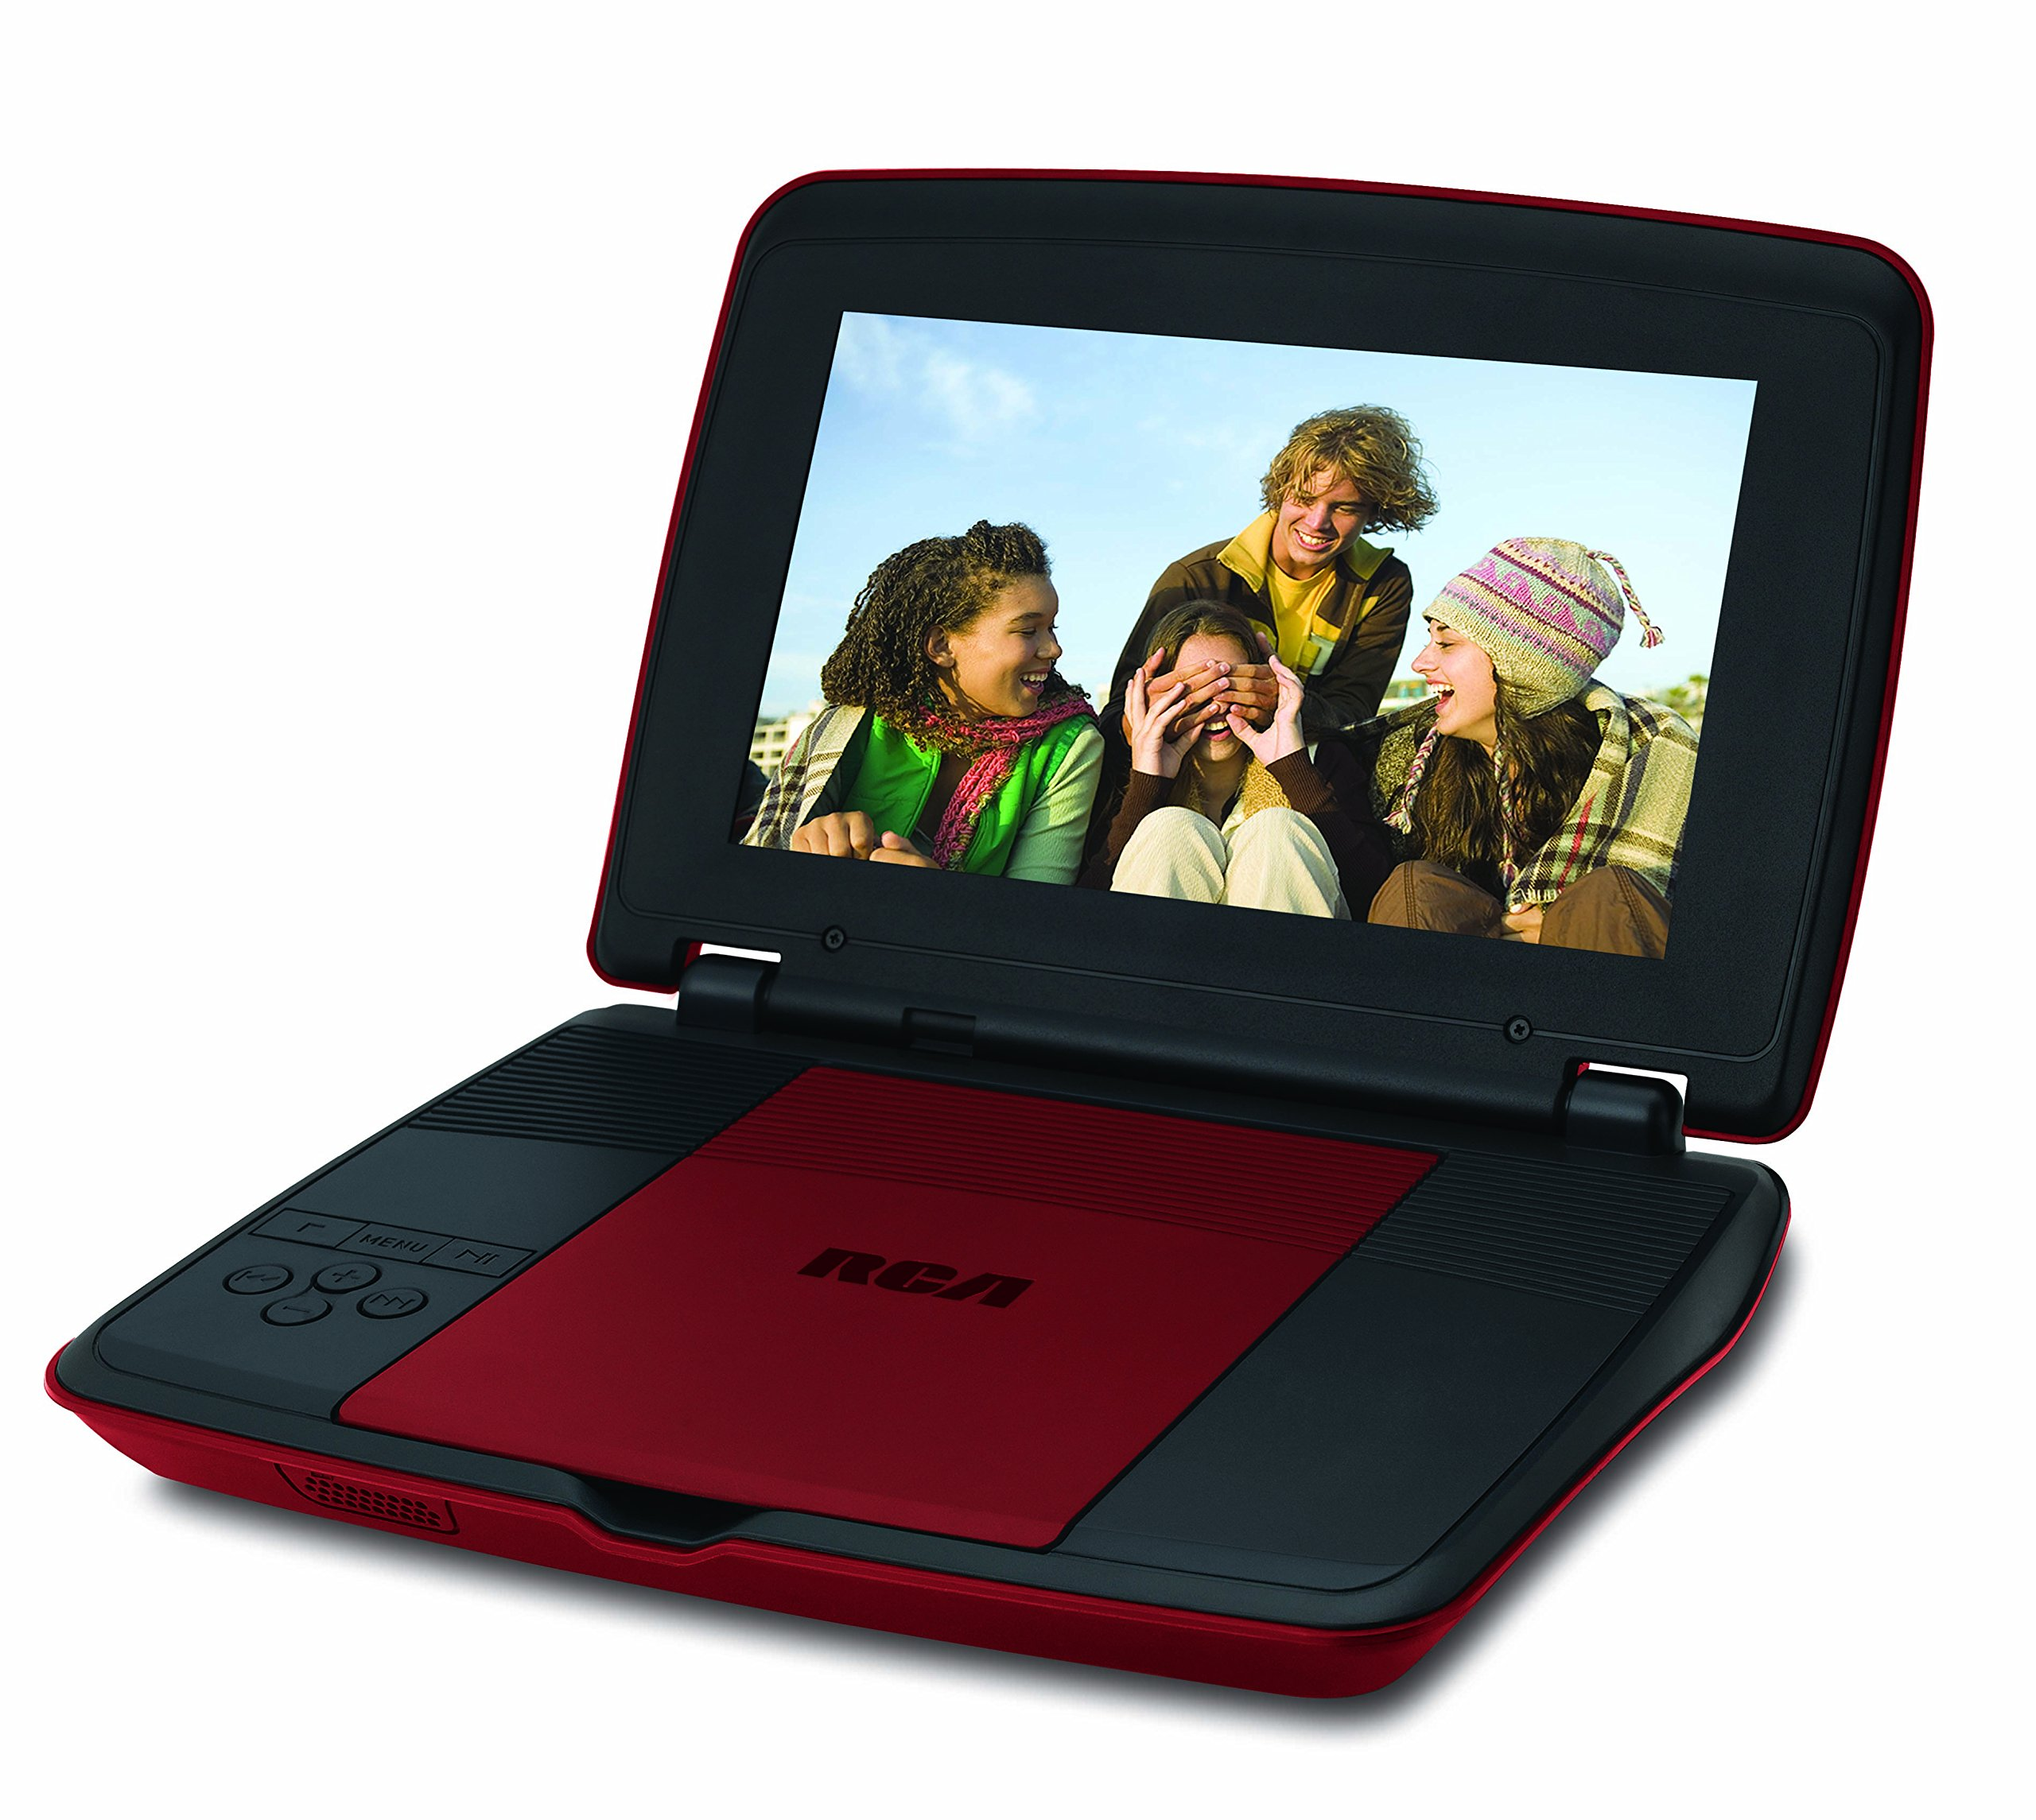 RCA 9 Inch Portable DVD CD Player with Travel Kit Watching in a Car Remote Control | Rechargeable Battery | AC Adapter | Car Charger, Red